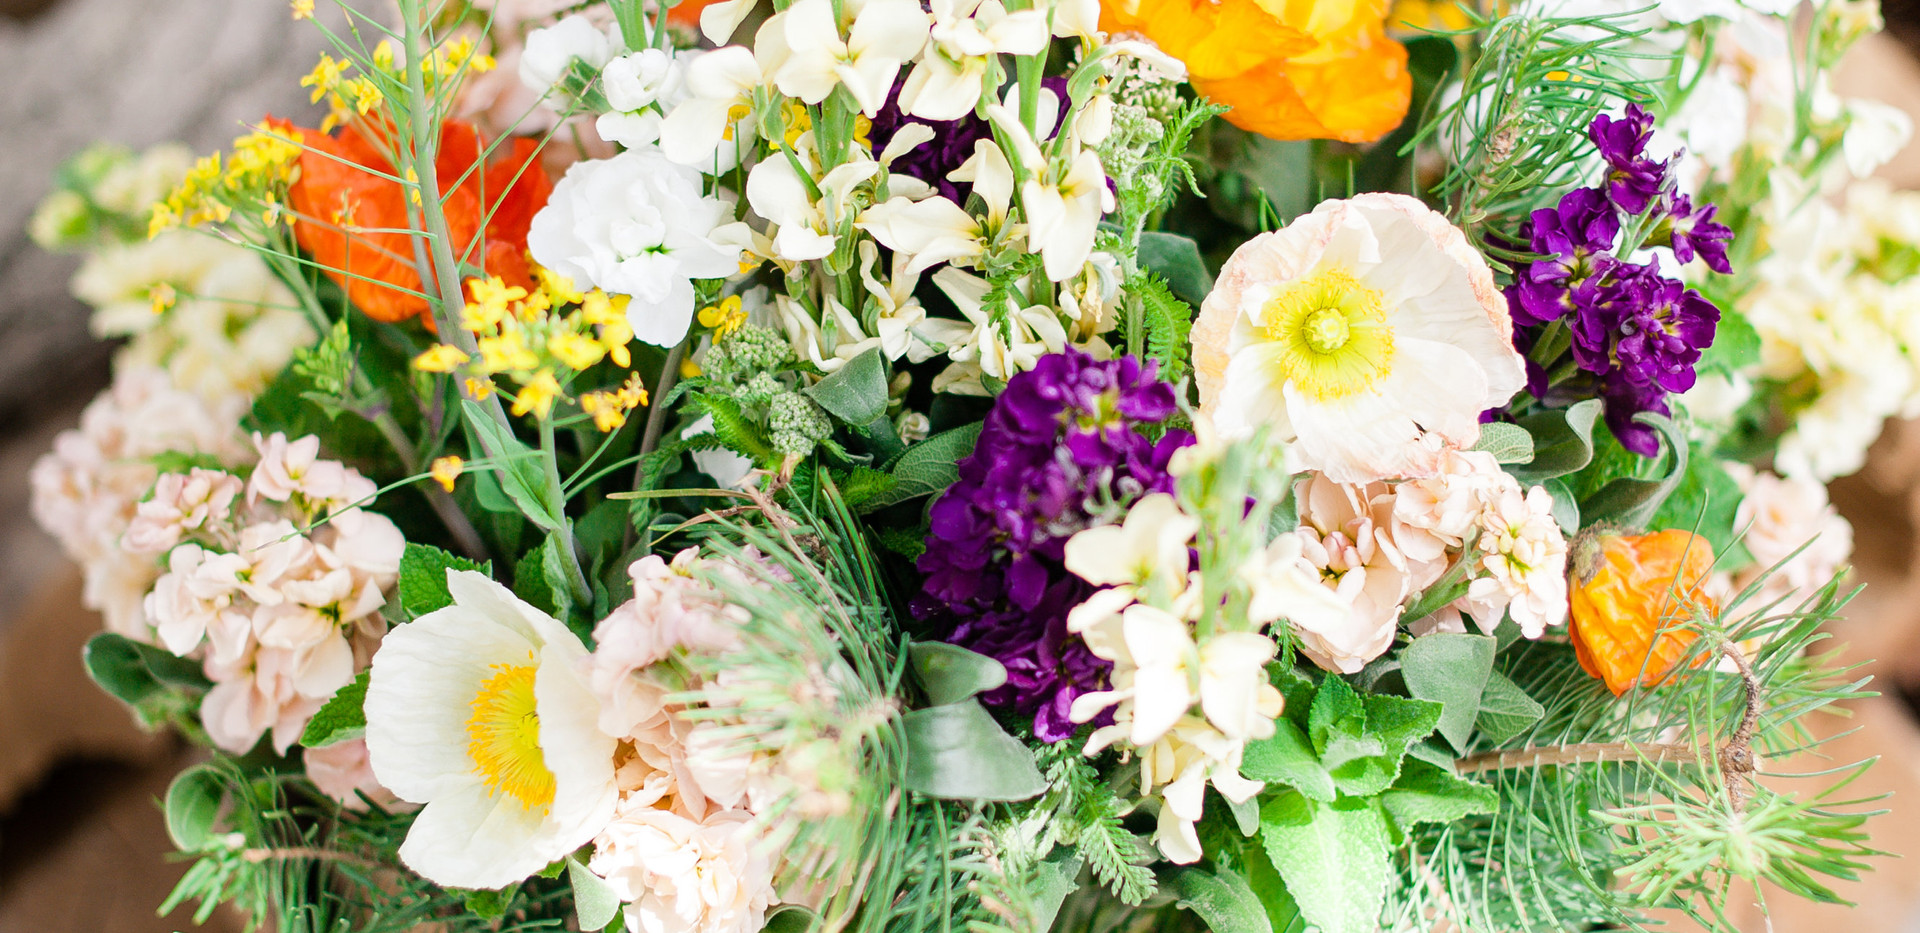 Spring/Woodsy Elegant Centerpiece for Bridal Shower Photo Credit: Kira Ellen Photography